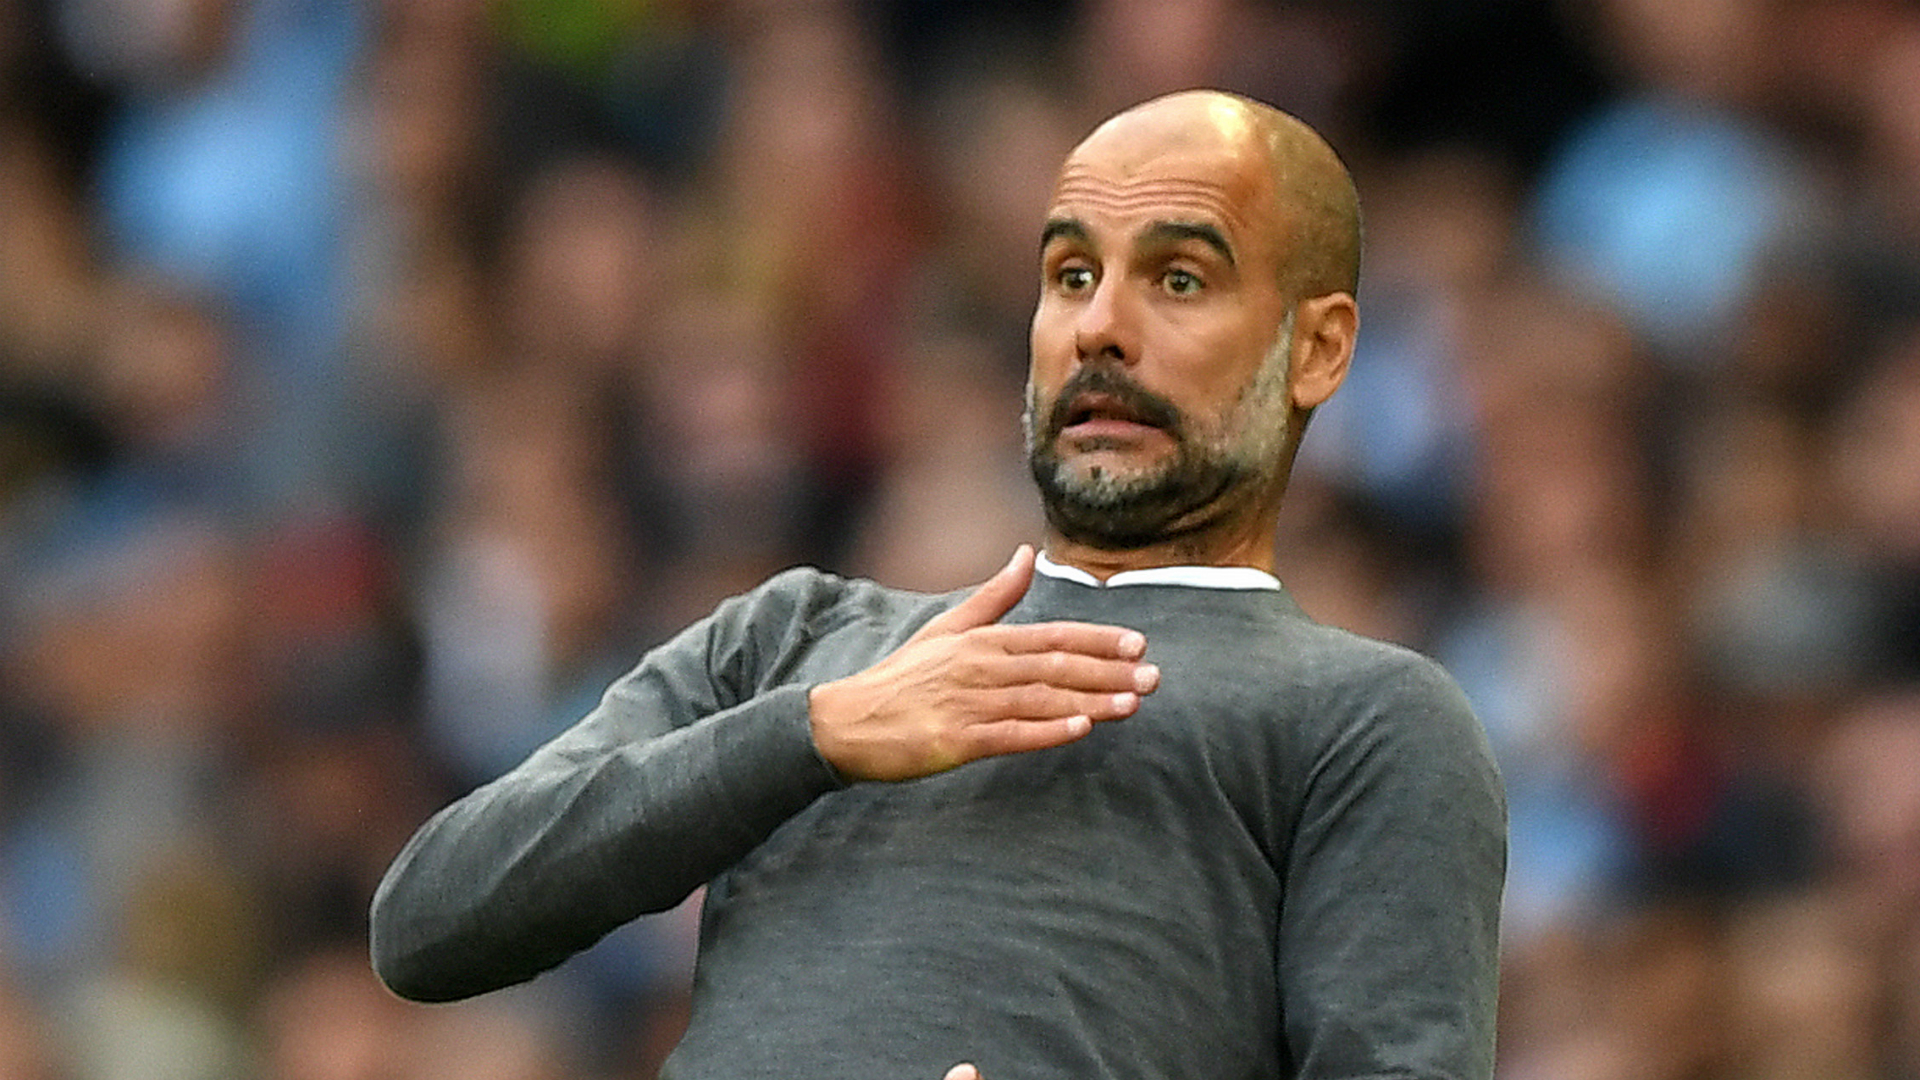 I couldn't 'train another team in England', says Guardiola